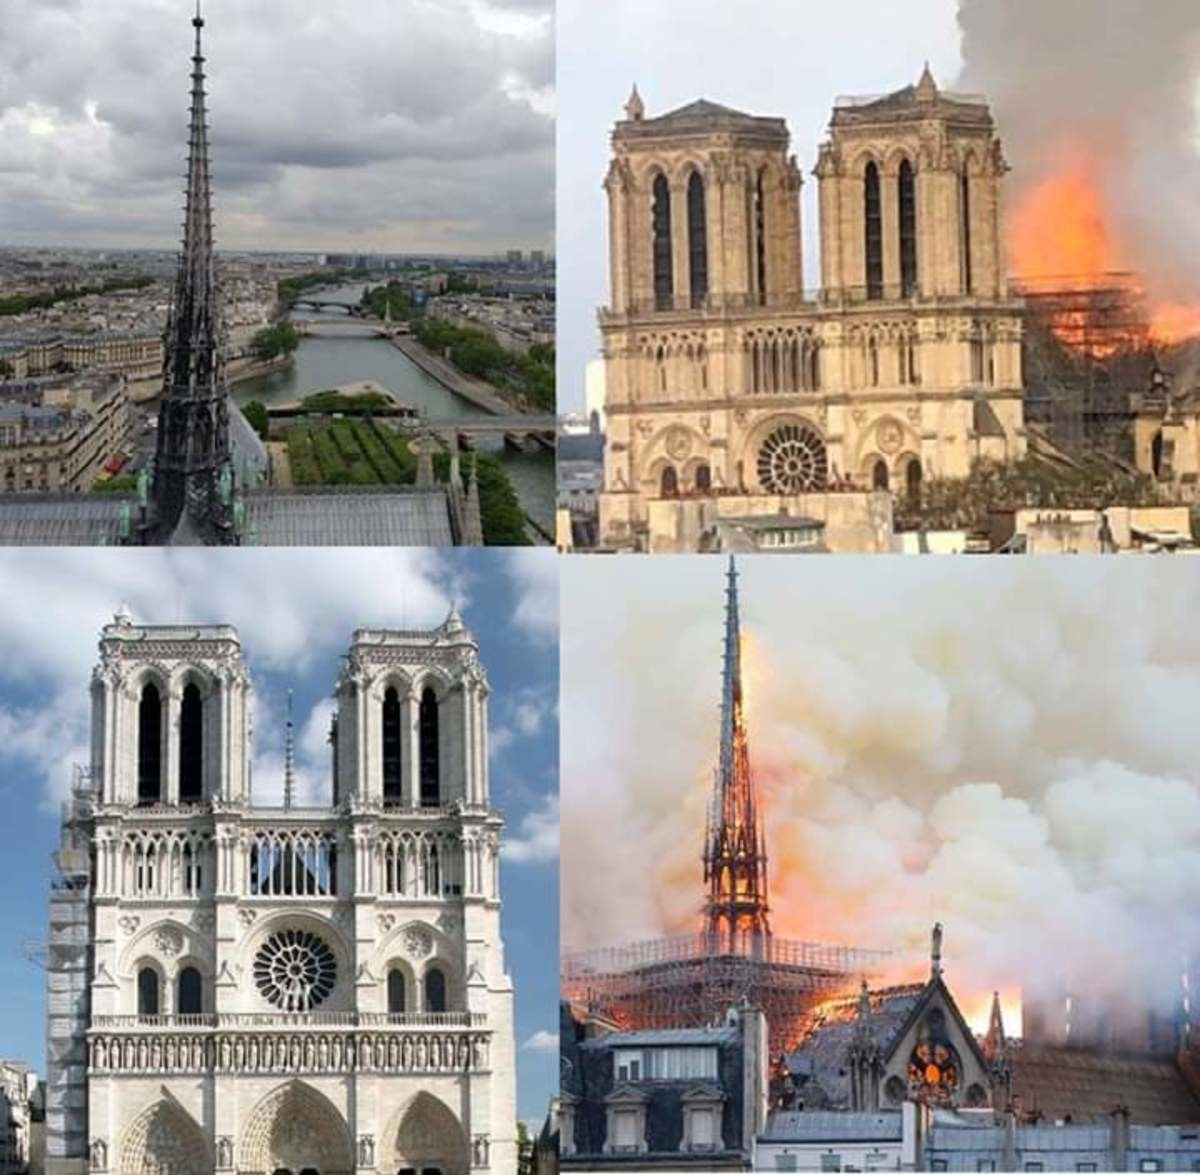 RIP Notre Dame. .. Too soon op, this was a great loss for humanity.